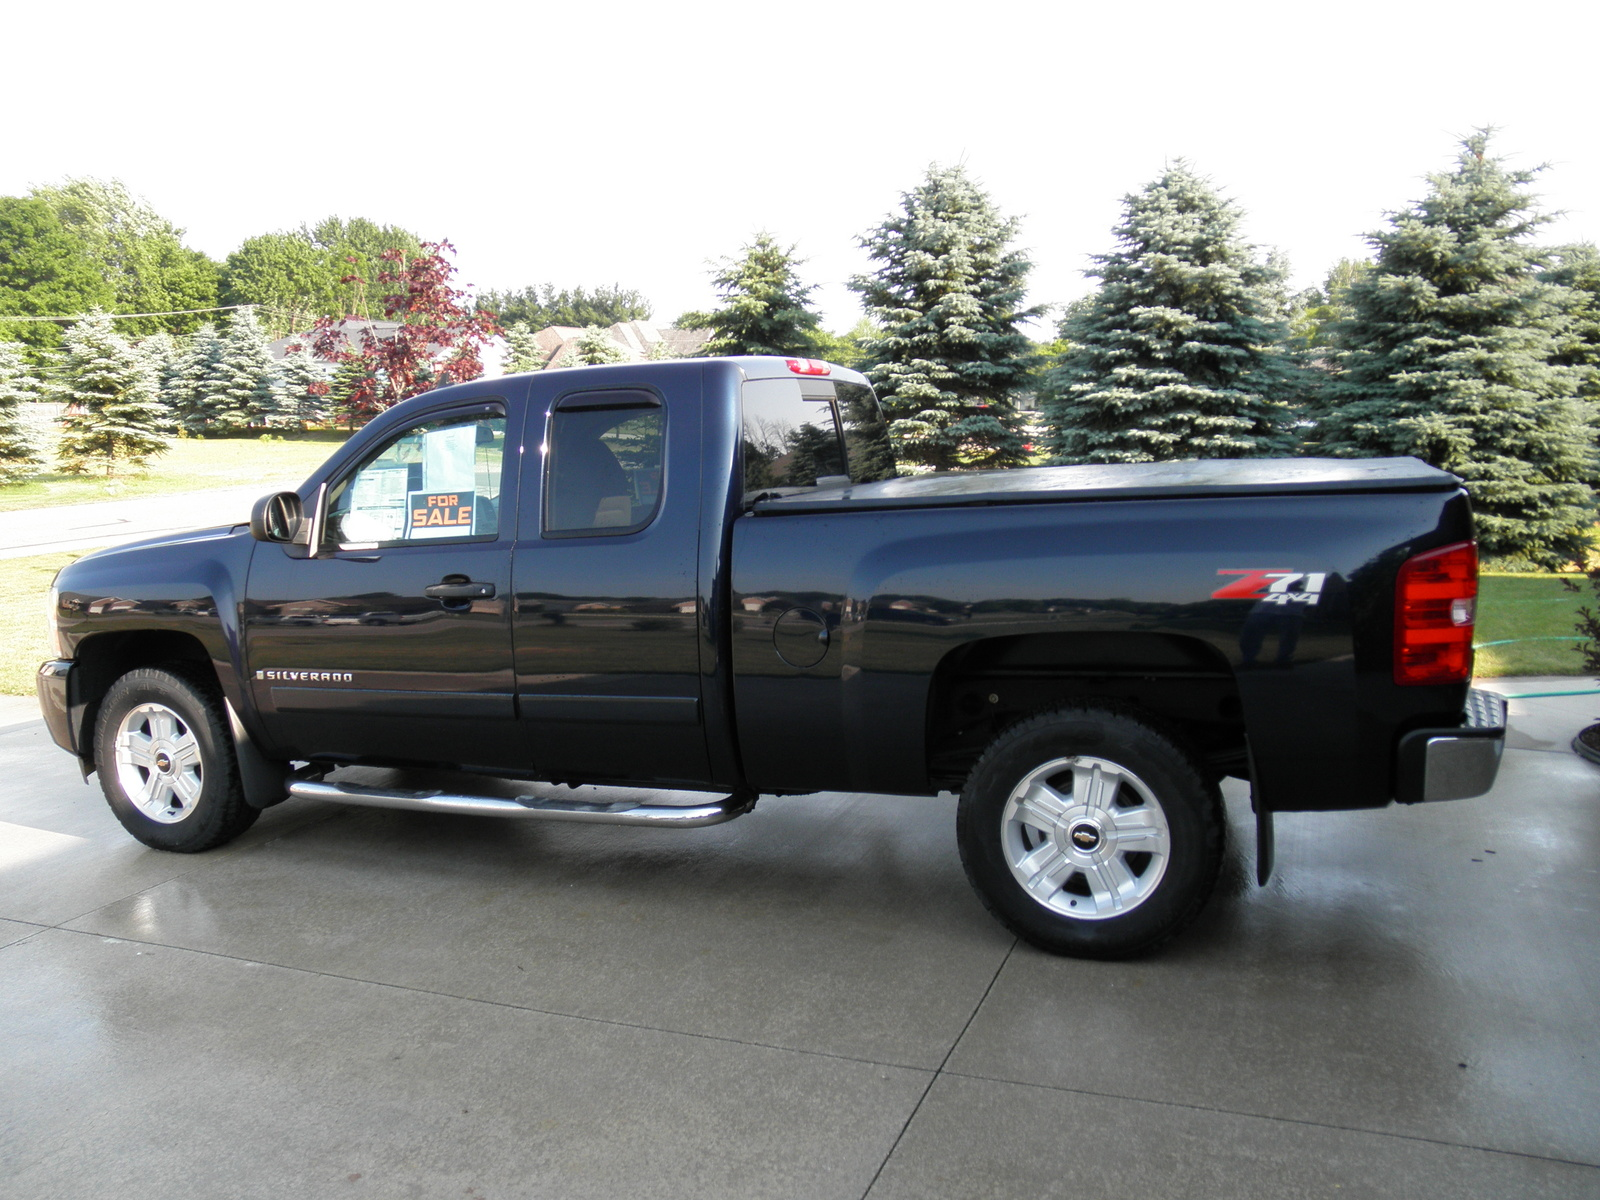 2014 chevrolet silverado drive review car news car reviews html autos weblog. Black Bedroom Furniture Sets. Home Design Ideas